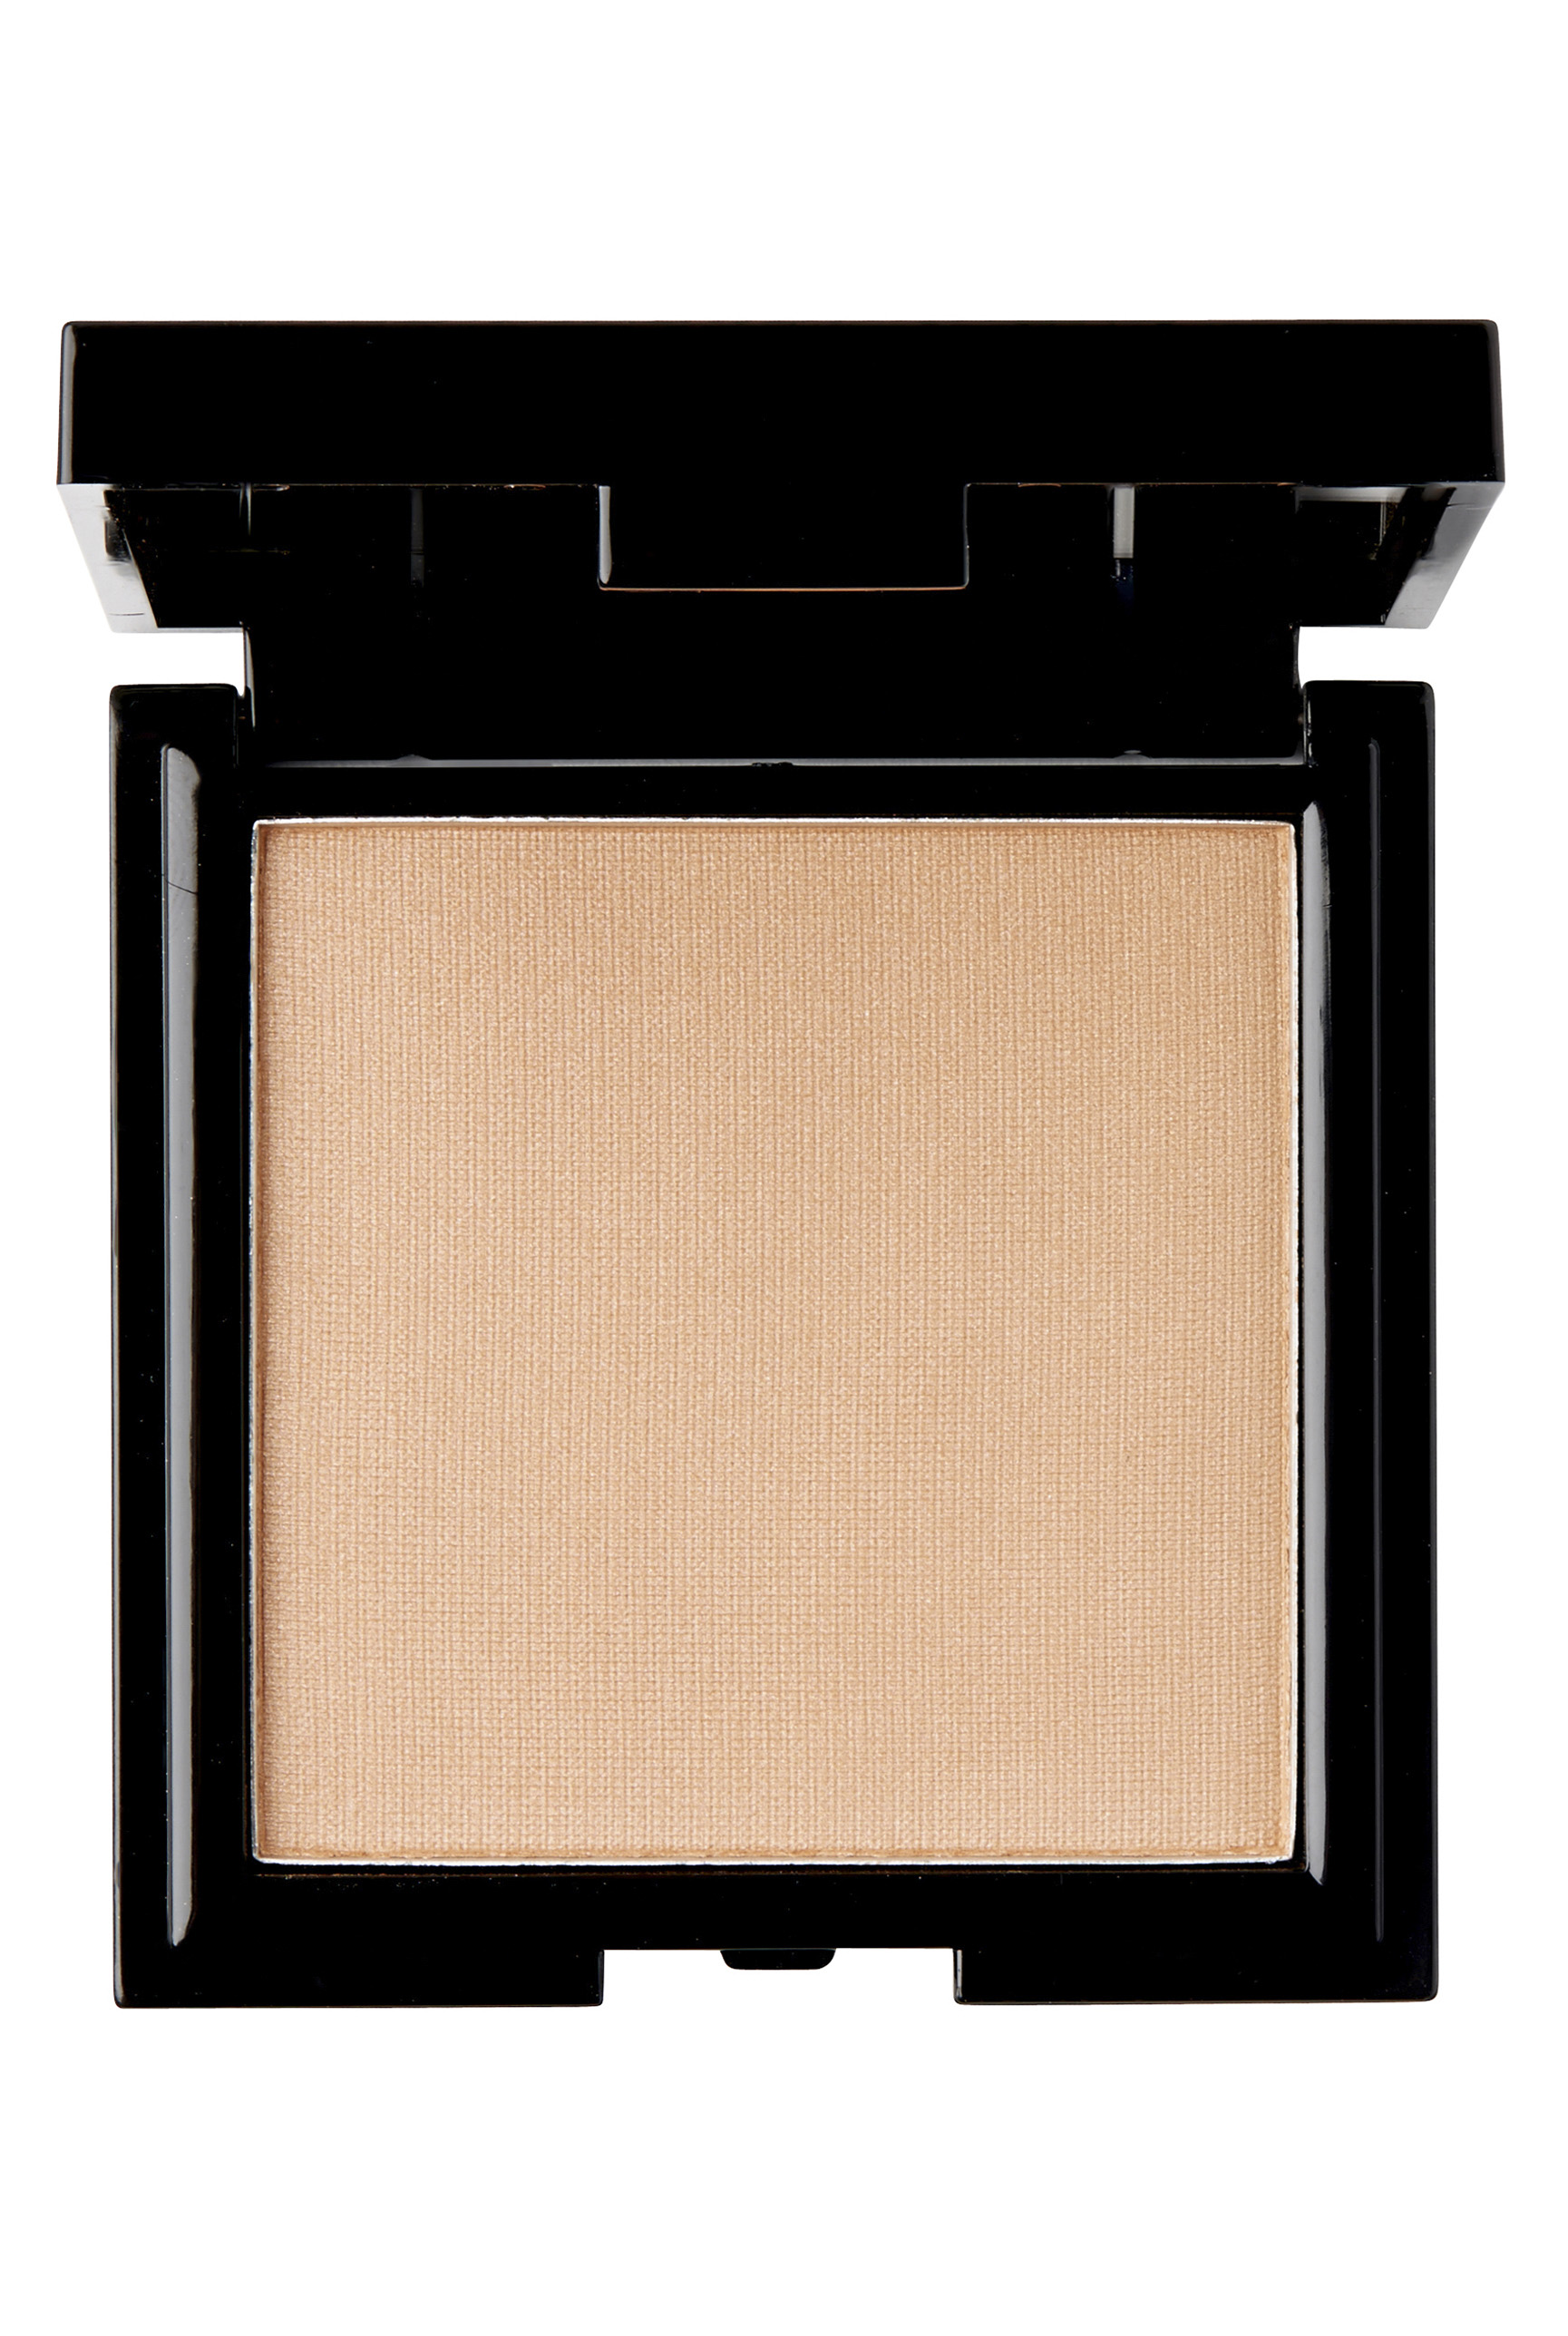 60172153_witcherybeauty-bronzer-in-champagne-21-90